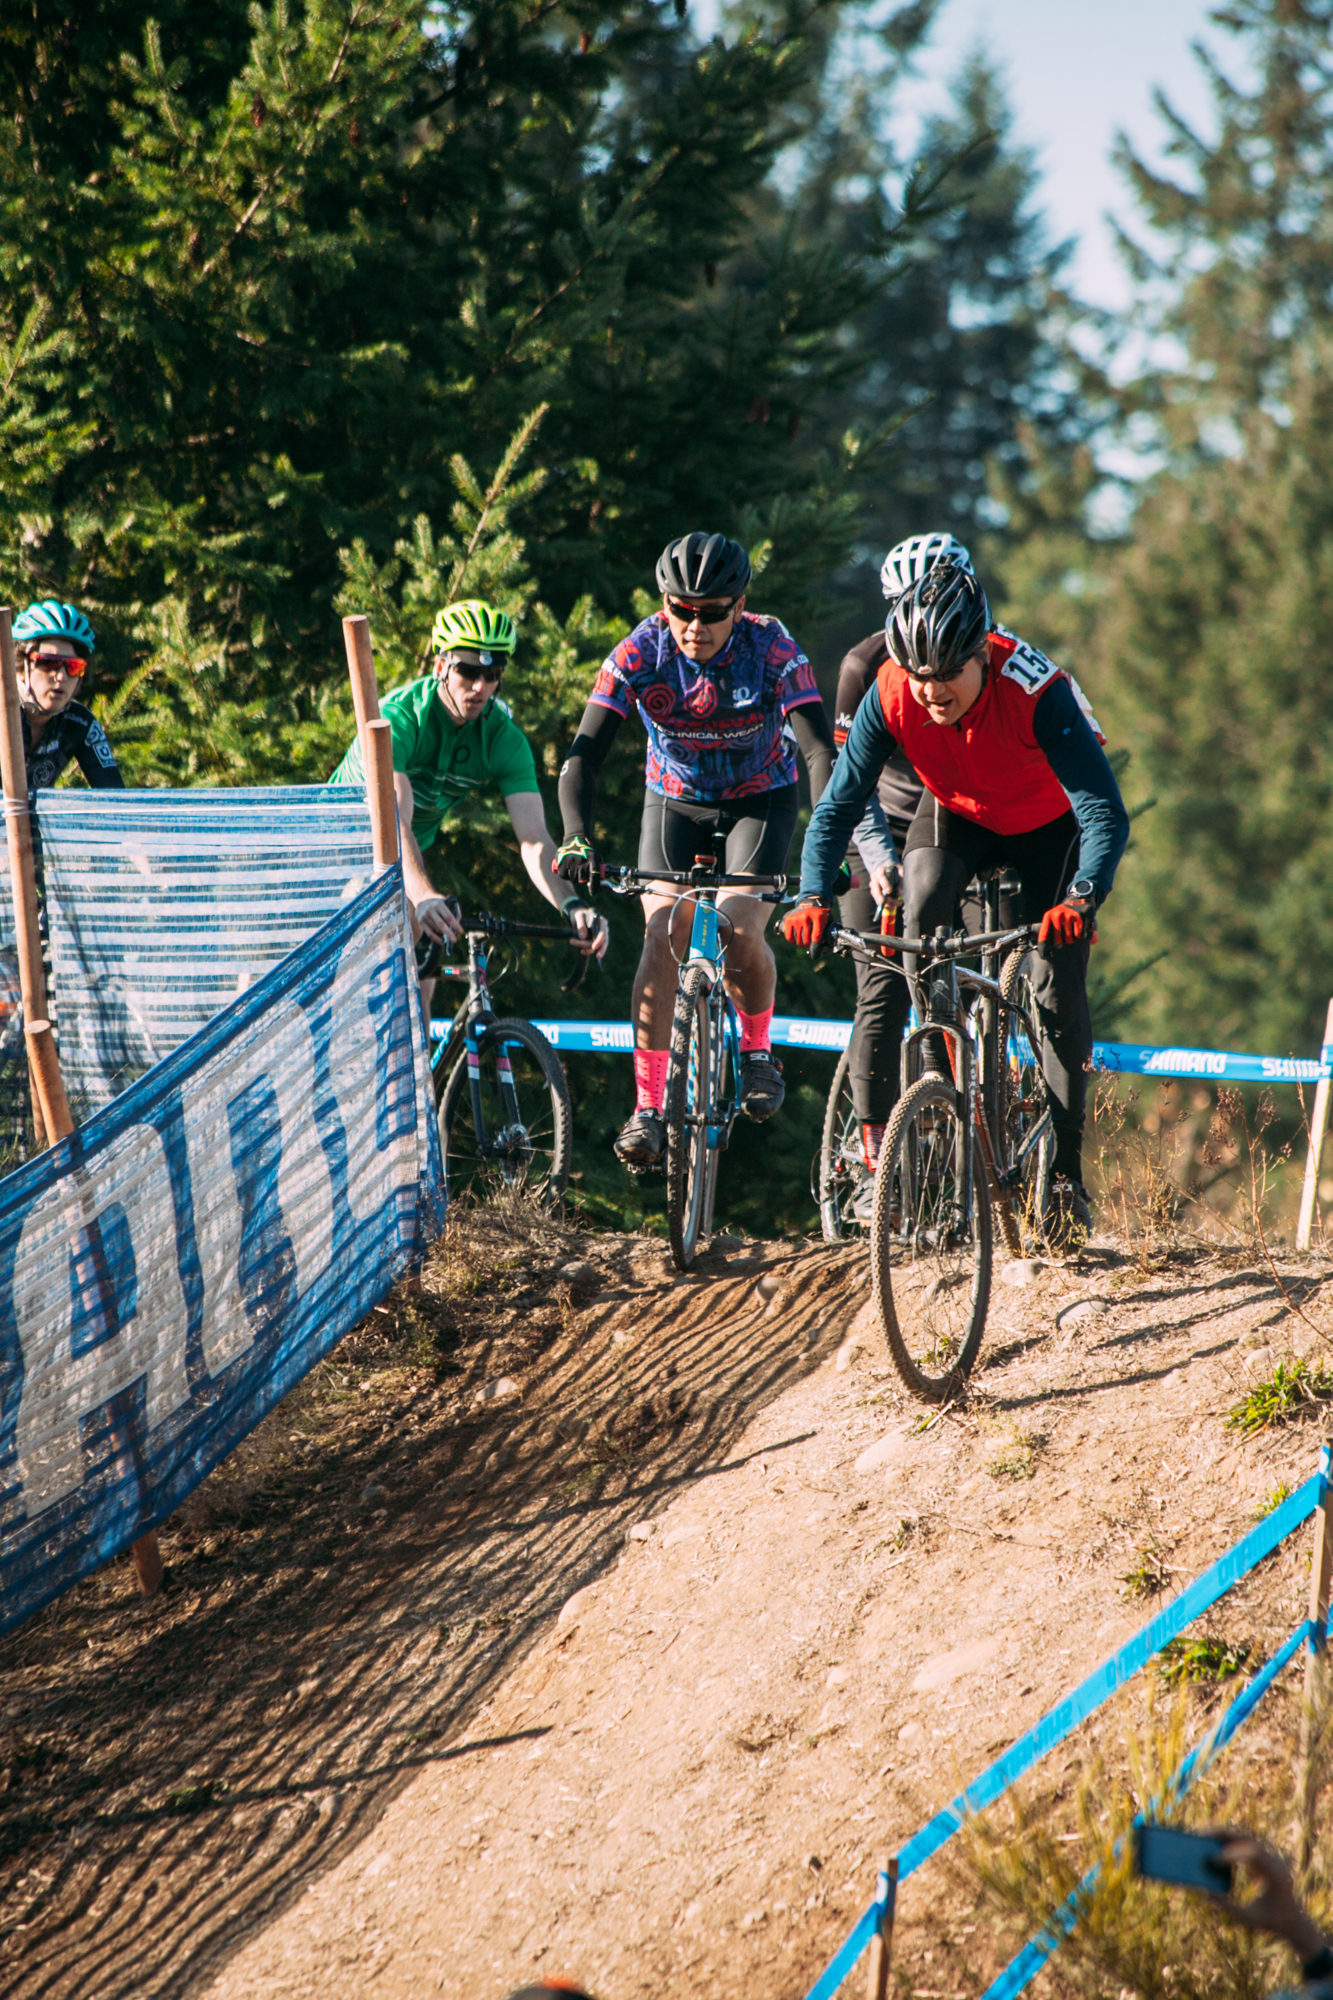 Cyclocross18_CCCX_BartonPark-mettlecycling98.jpg